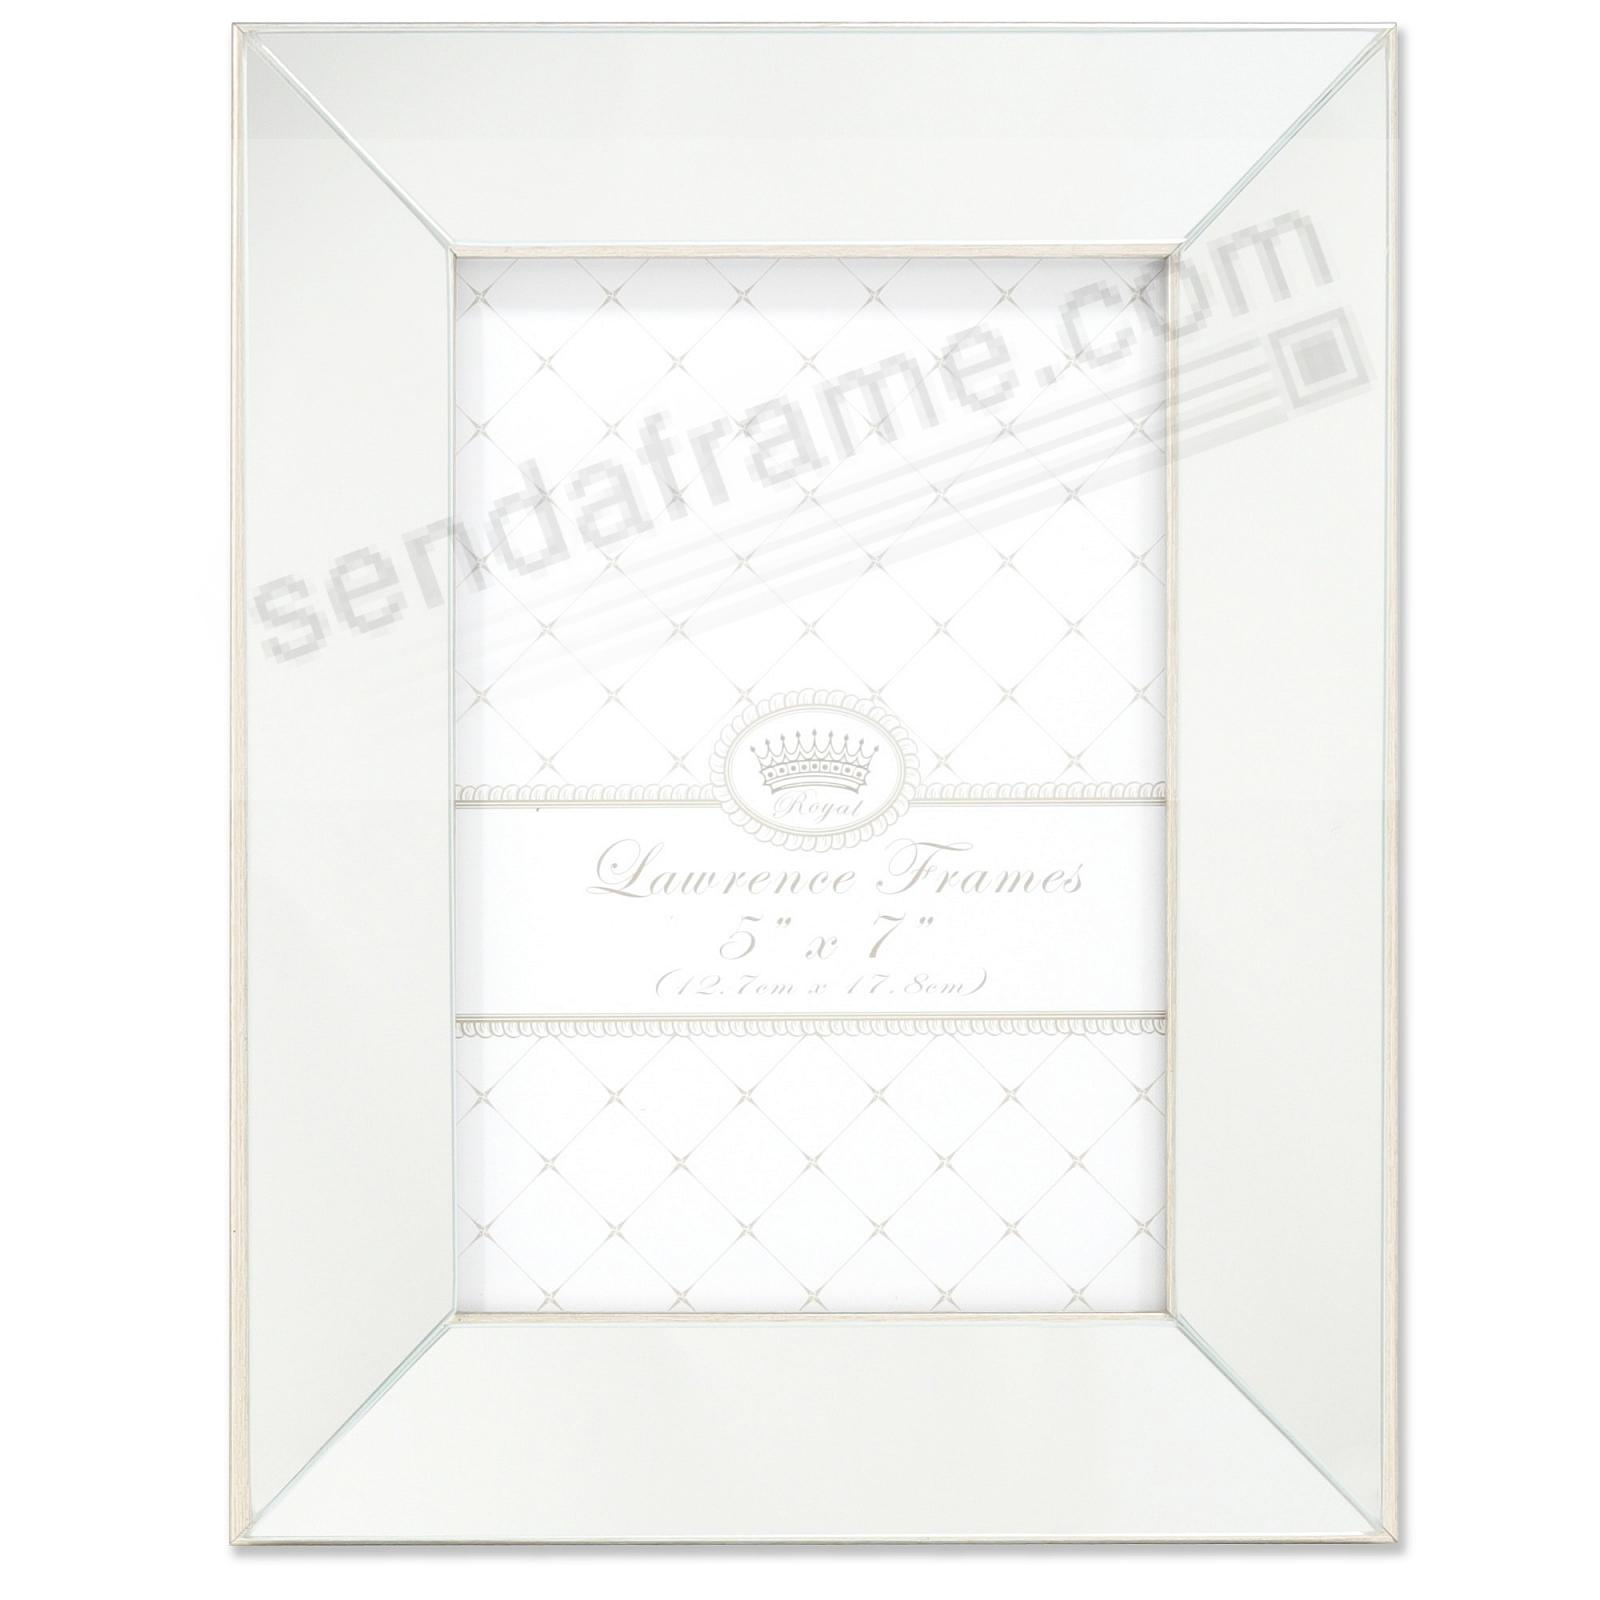 ASHTON MIRROR 5x7 frame for contemporary styling